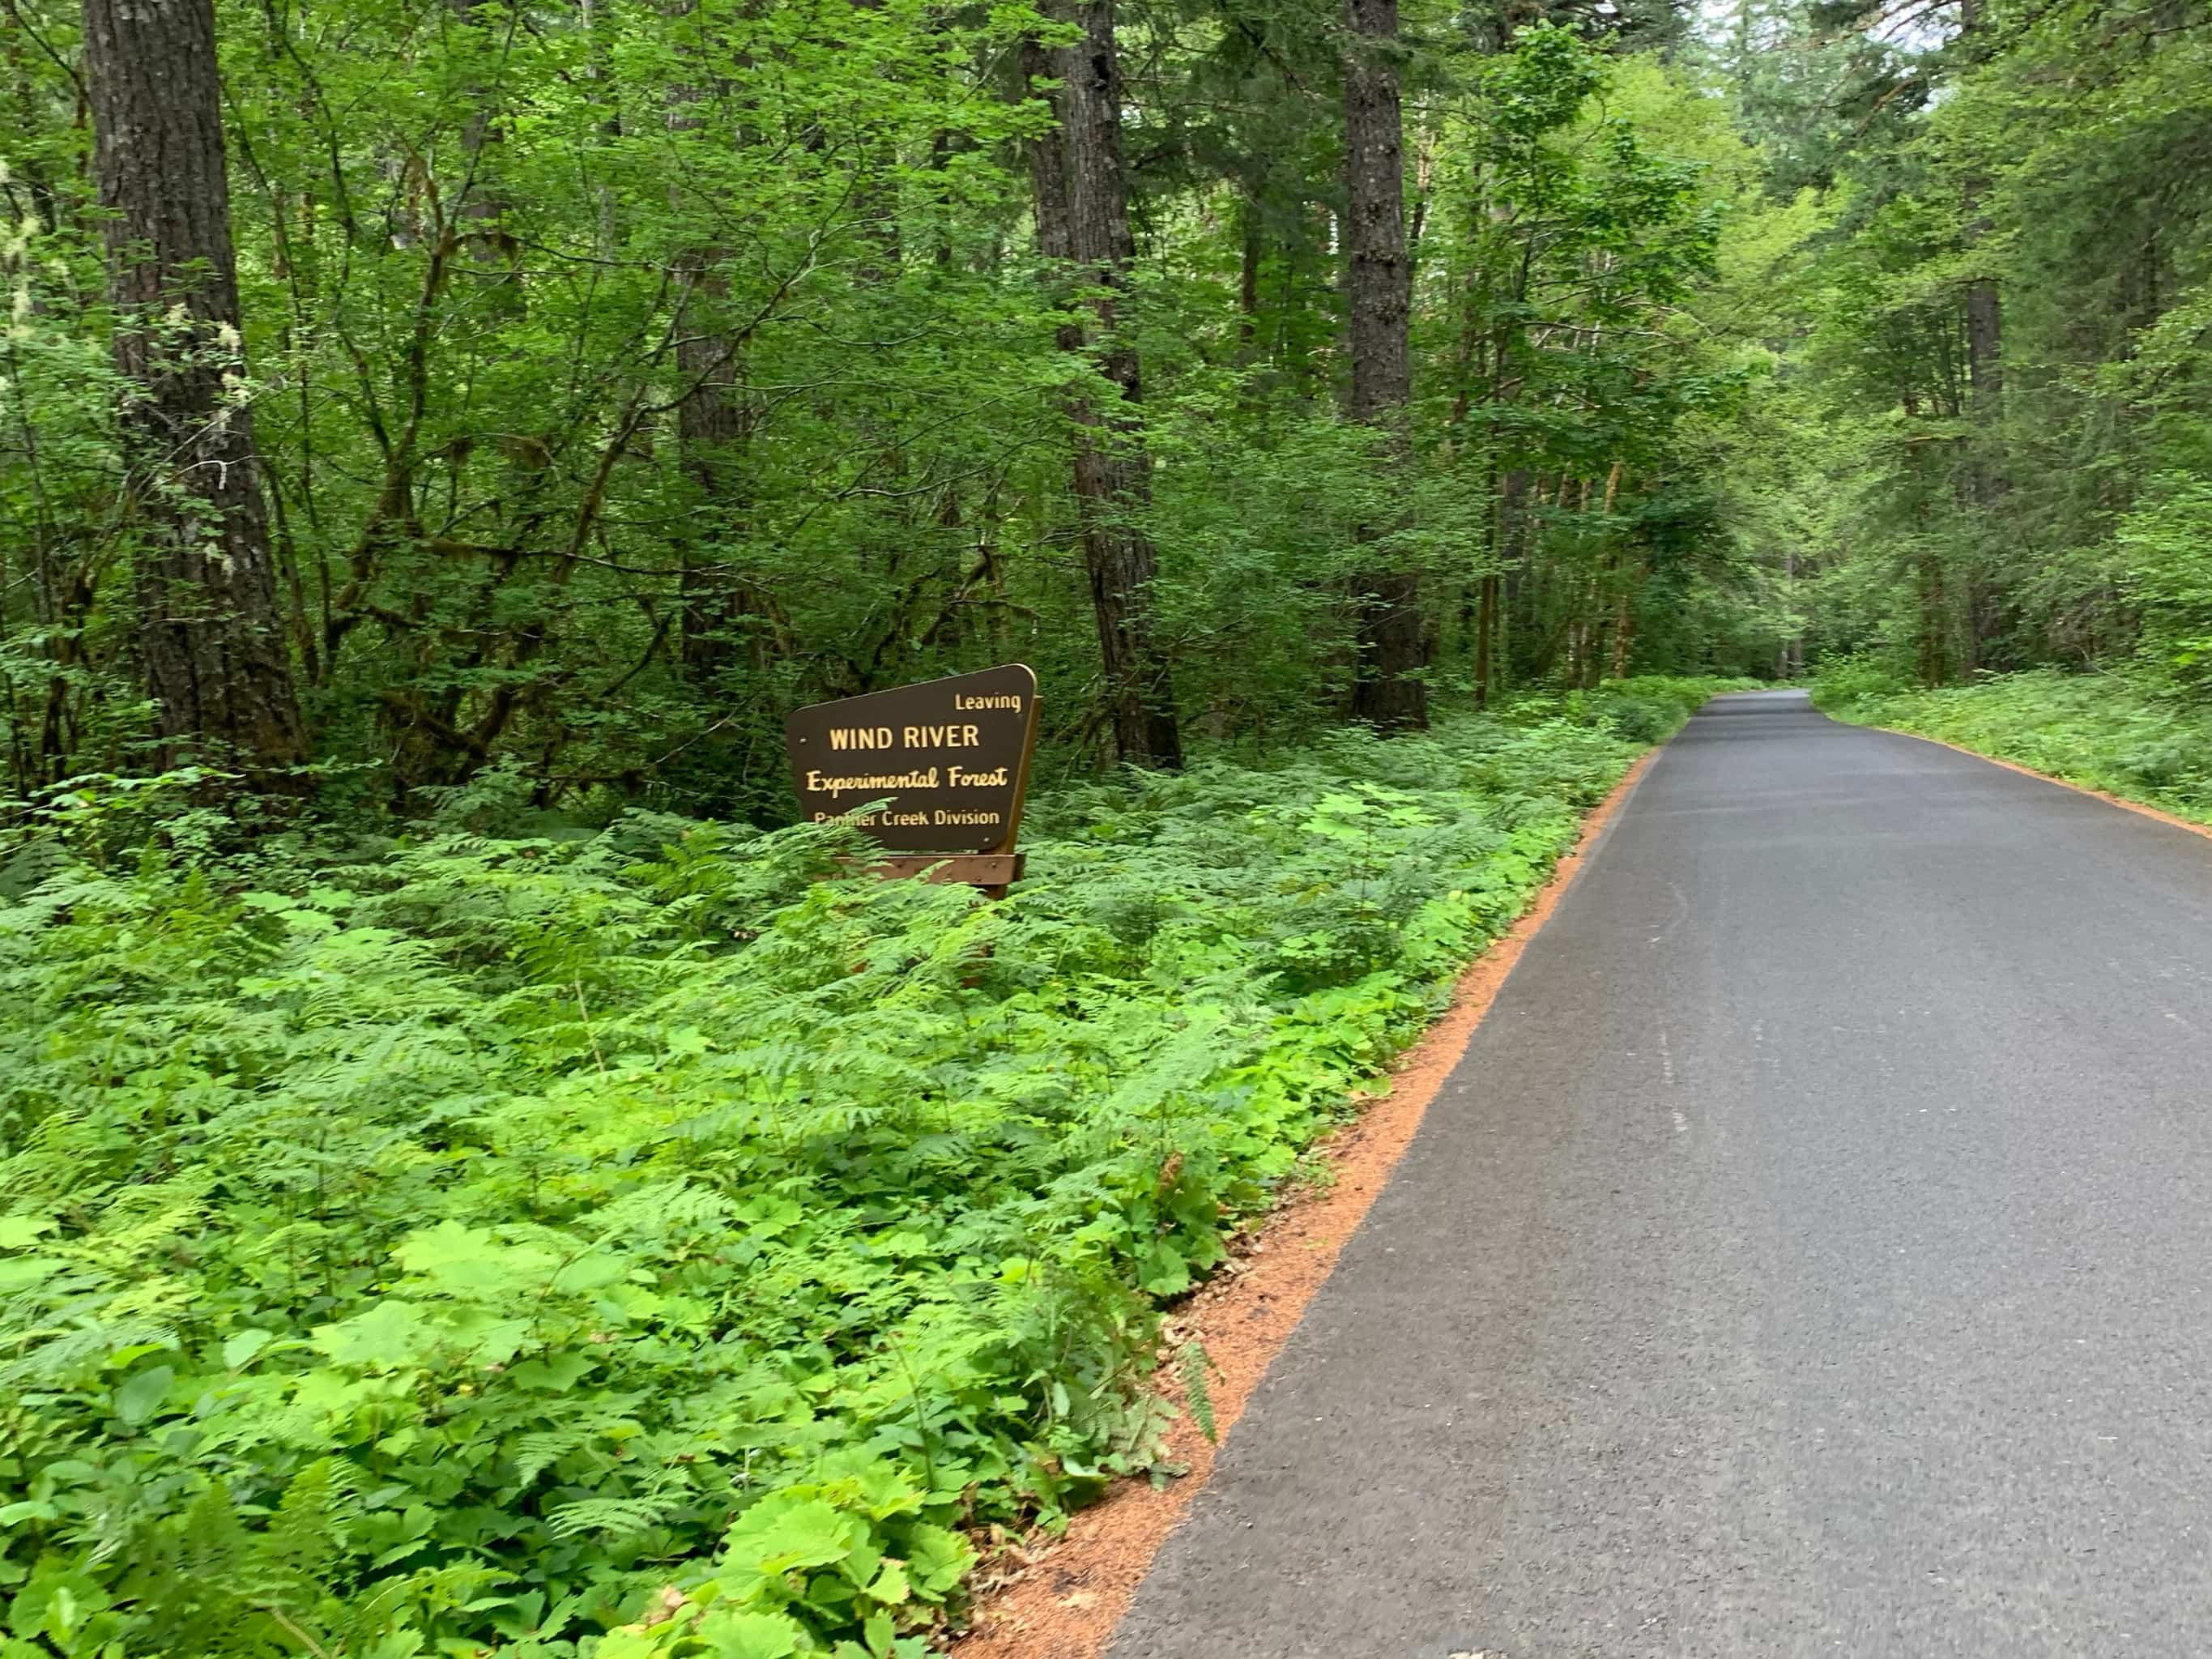 Experimental Forest sign in Gifford Pinchot national forest.